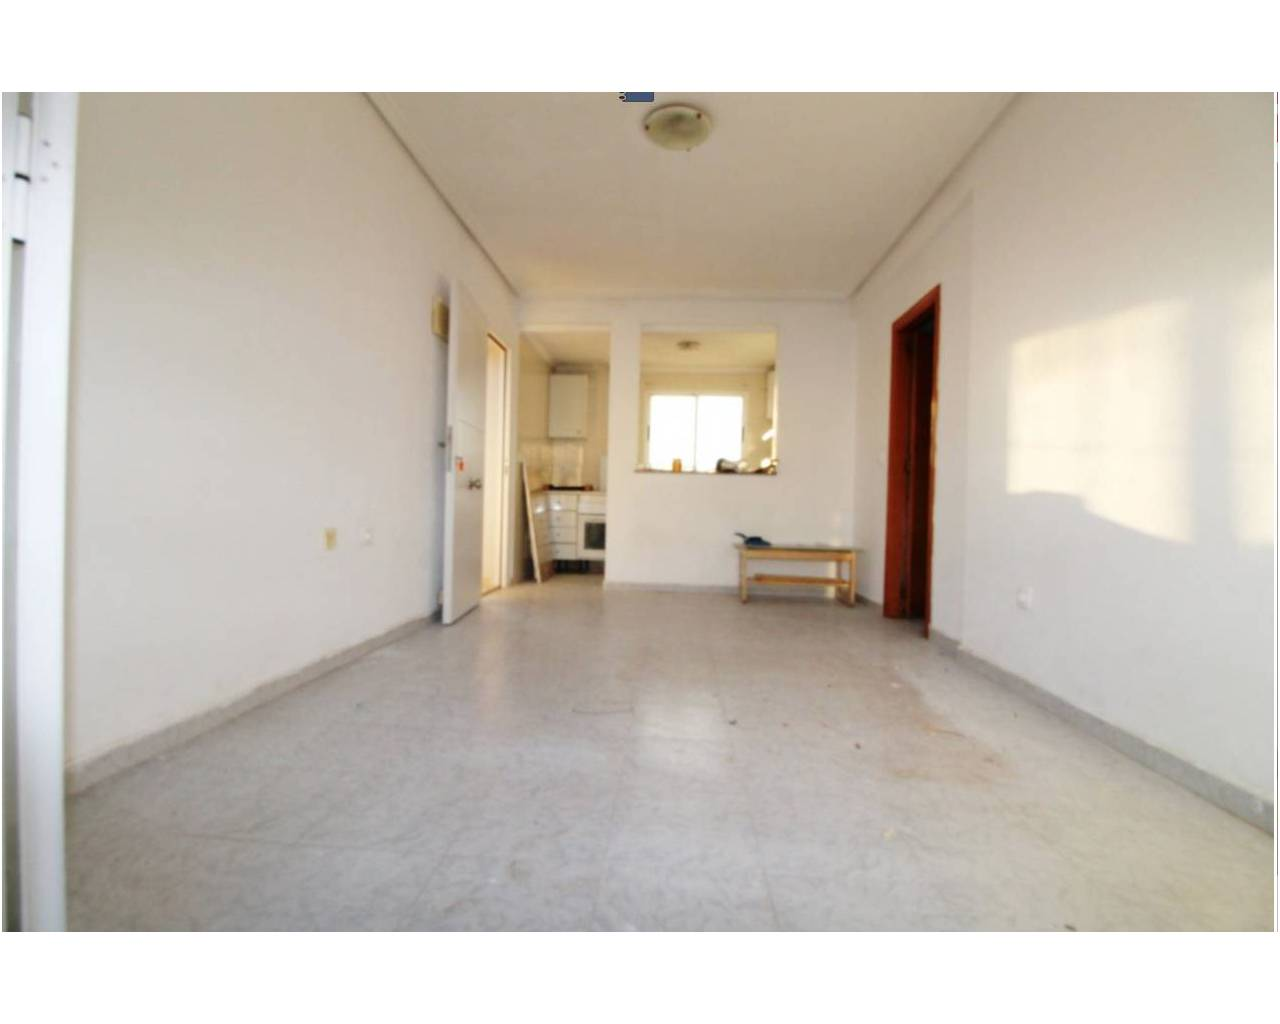 Sale - Studio apartment - Torrevieja - Torreblanca